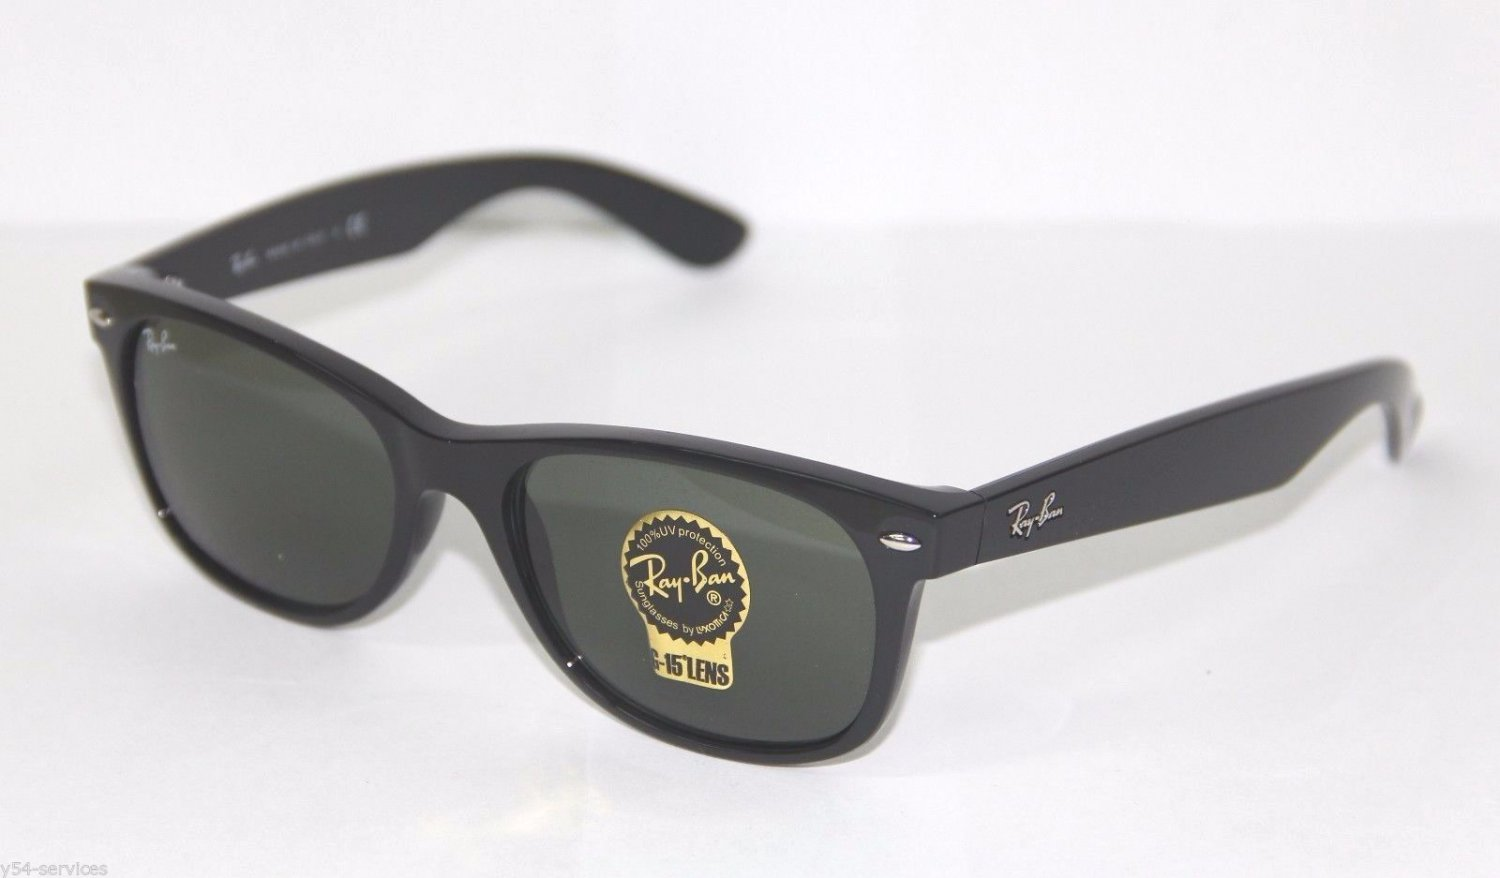 Ray-Ban New WAYFARER 2132 901L 55 Large BLACK GREEN Sunglasses NEW & 100% ORIGINAL